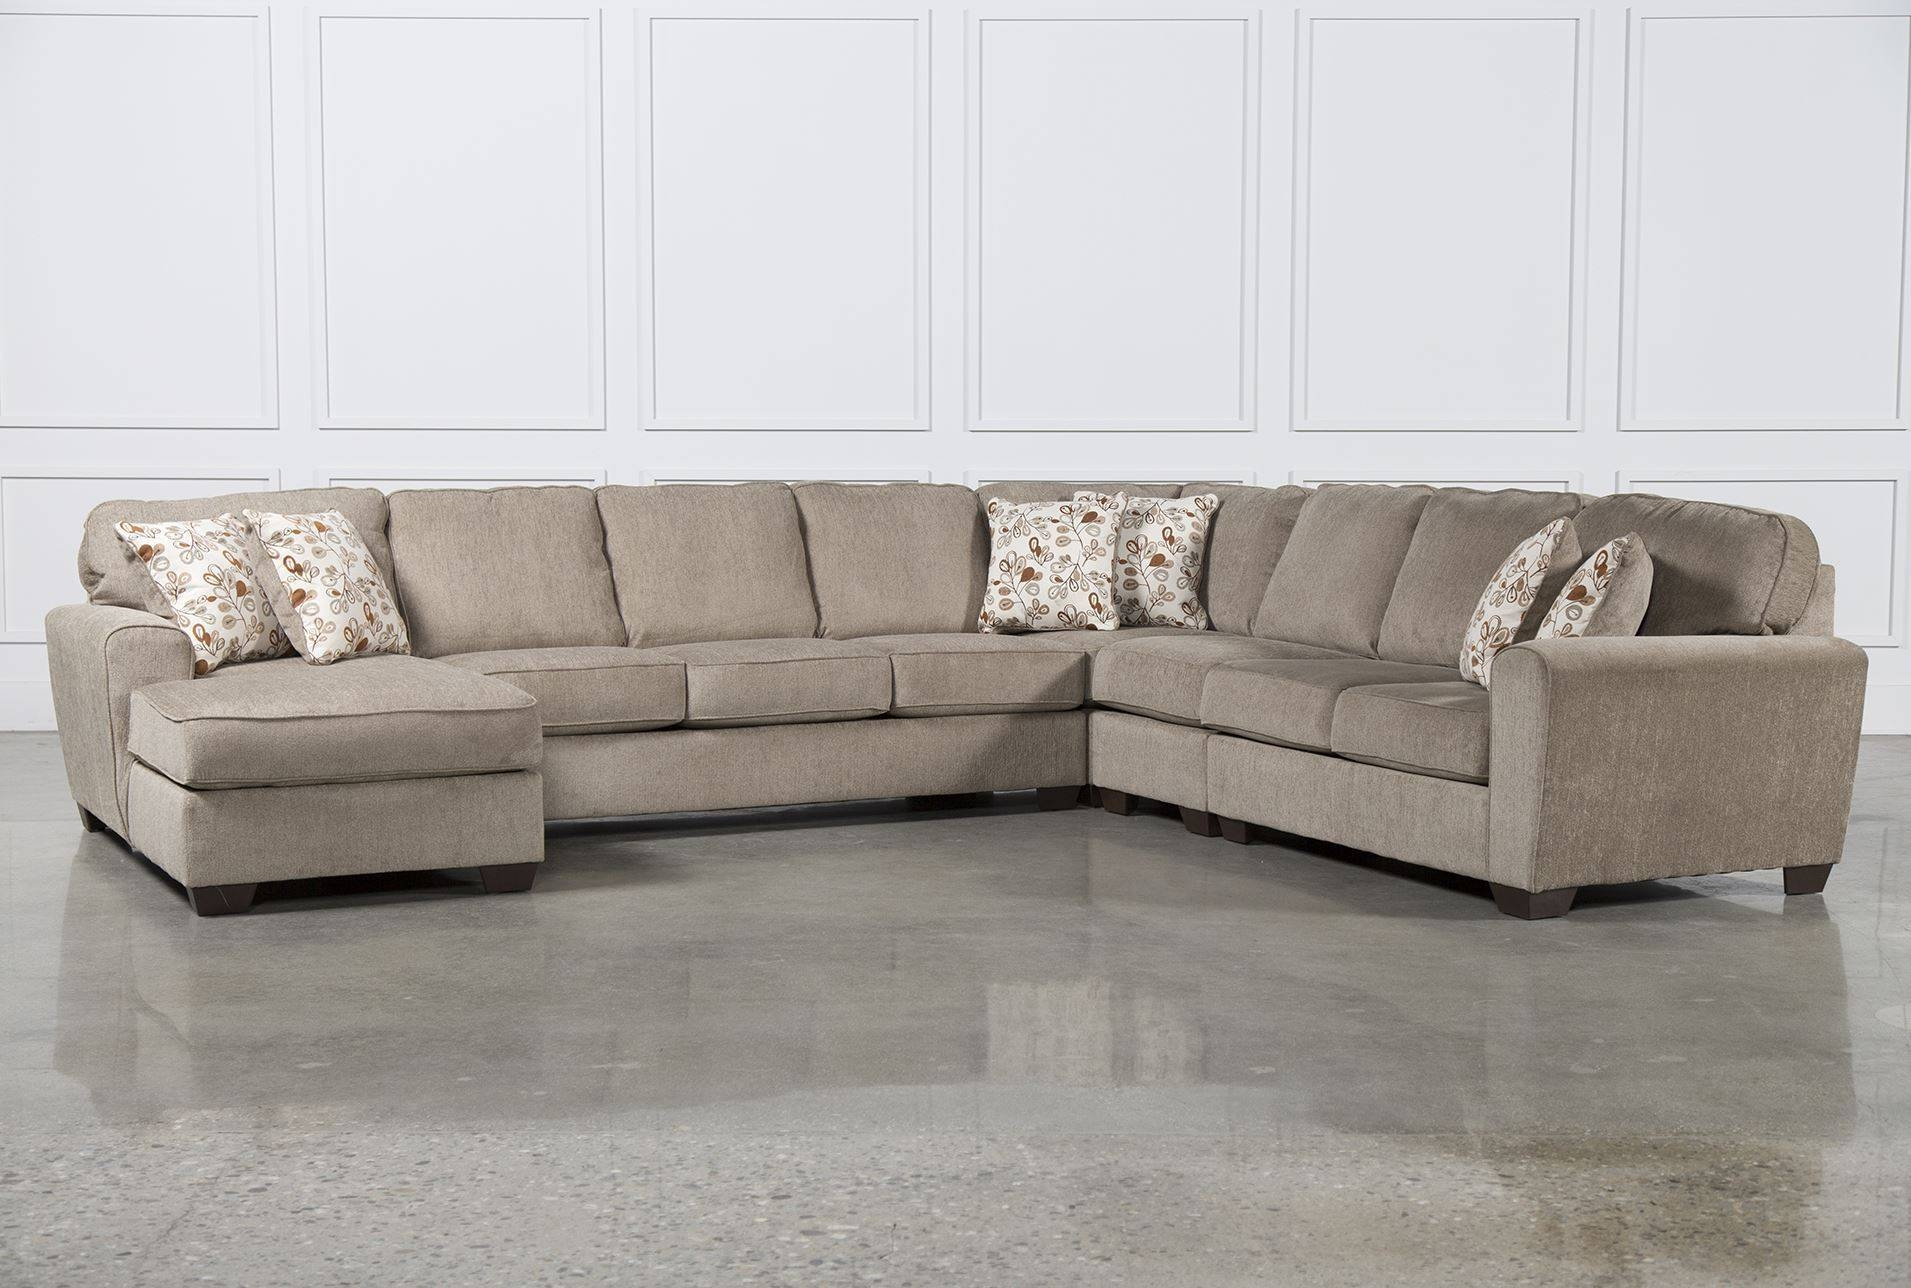 30 Best Collection of Condo Sectional Sofas